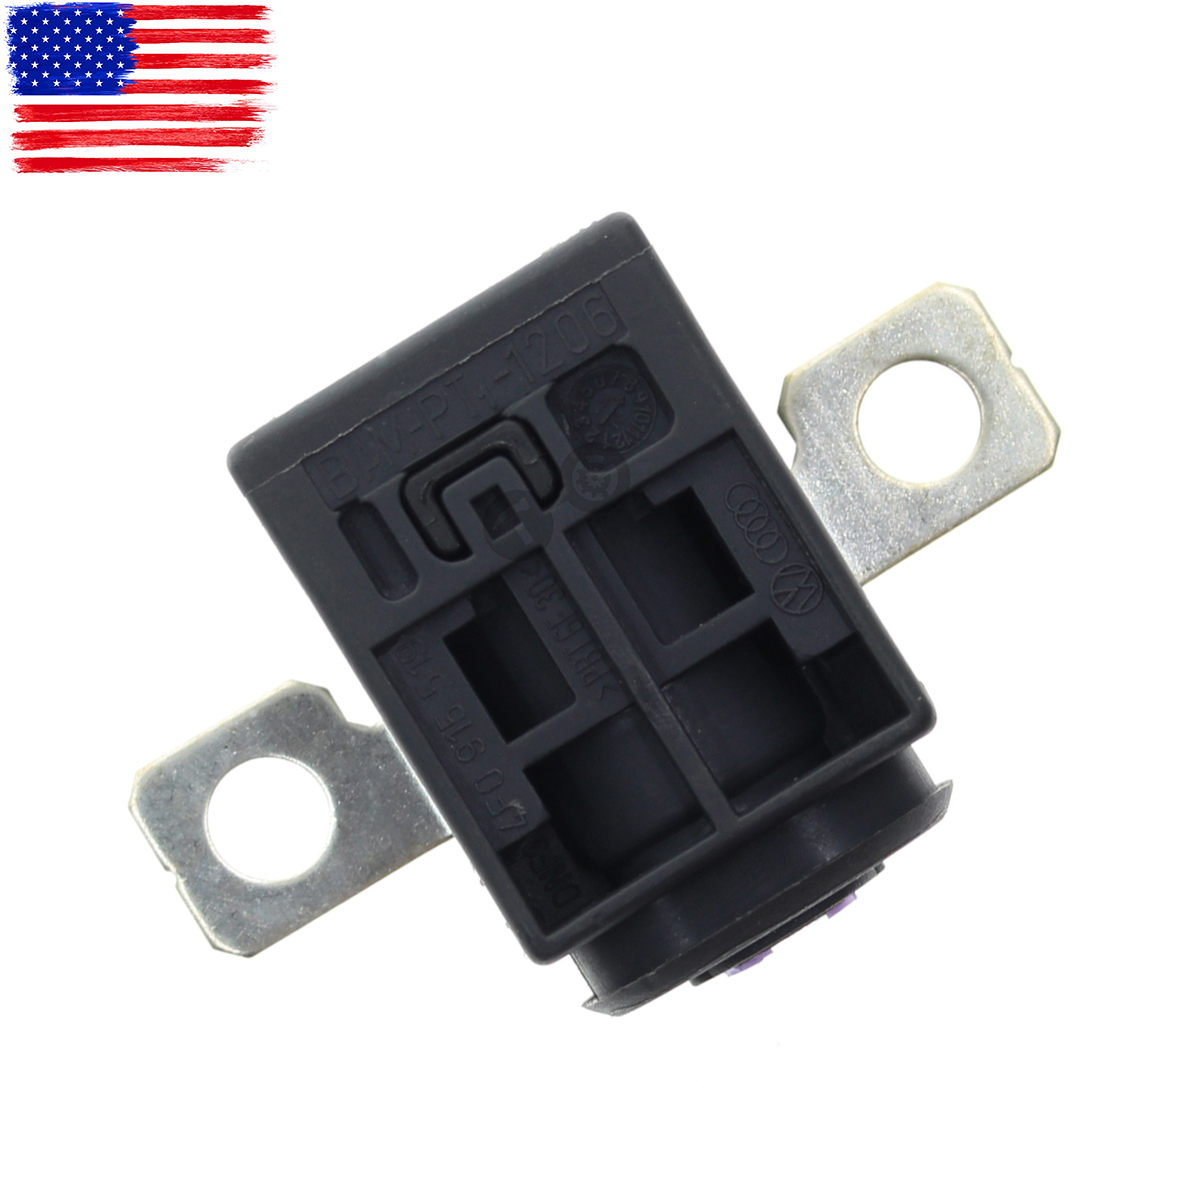 New Battery Fuse Overload Protection Trip For Skoda Superb Vw Box On Touareg 8j0915459